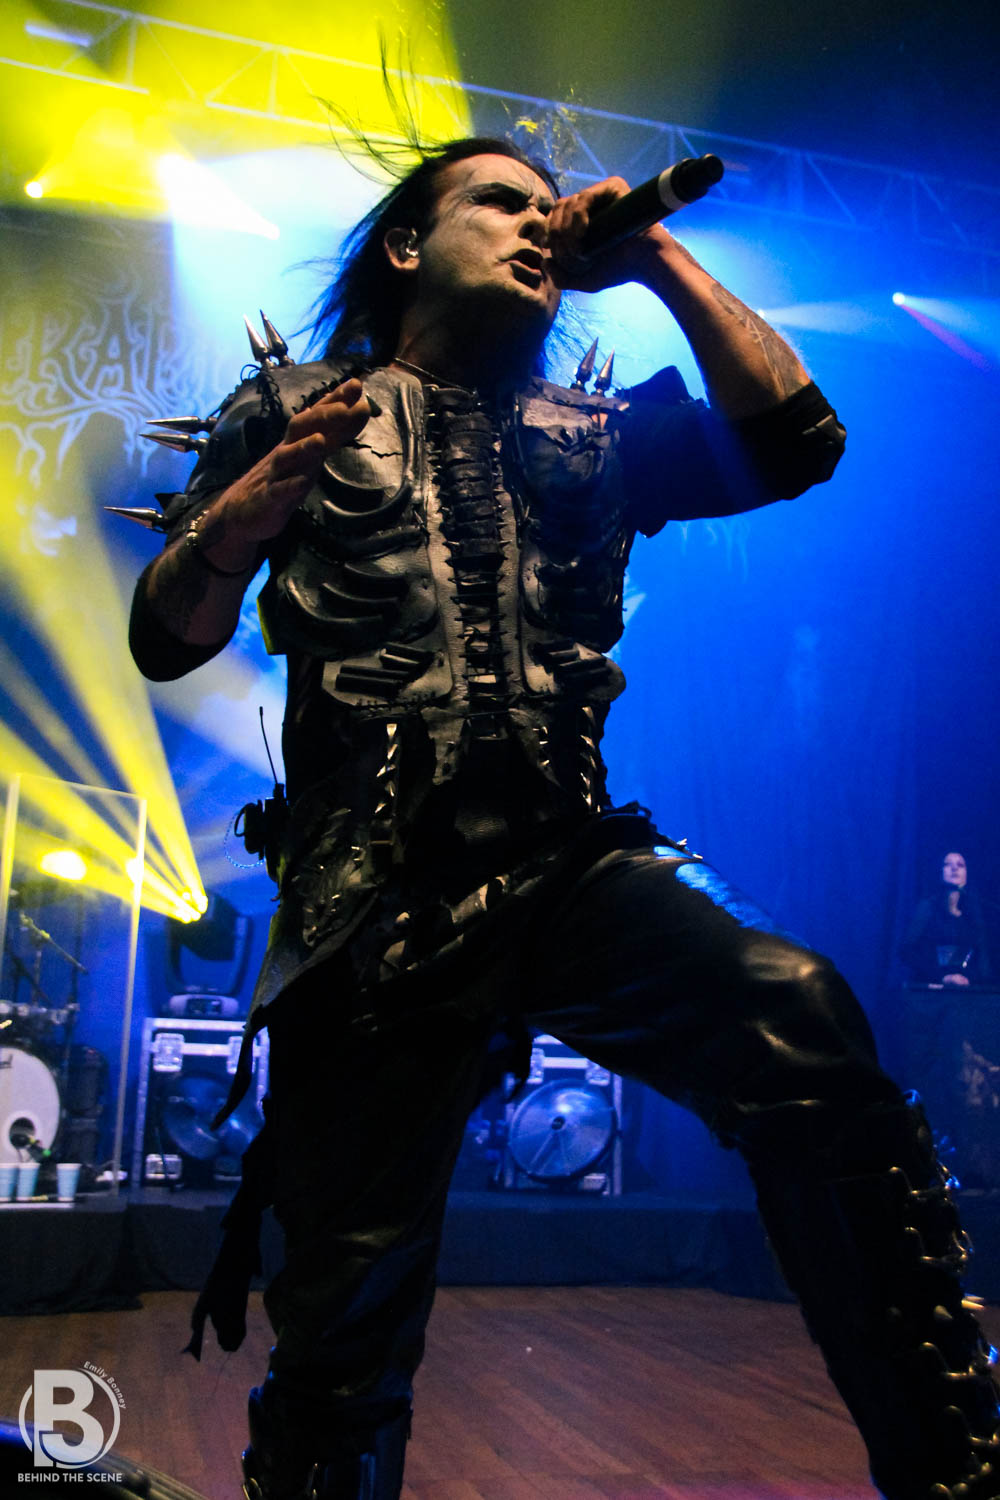 040818 CradleofFilth EB-2652.jpg